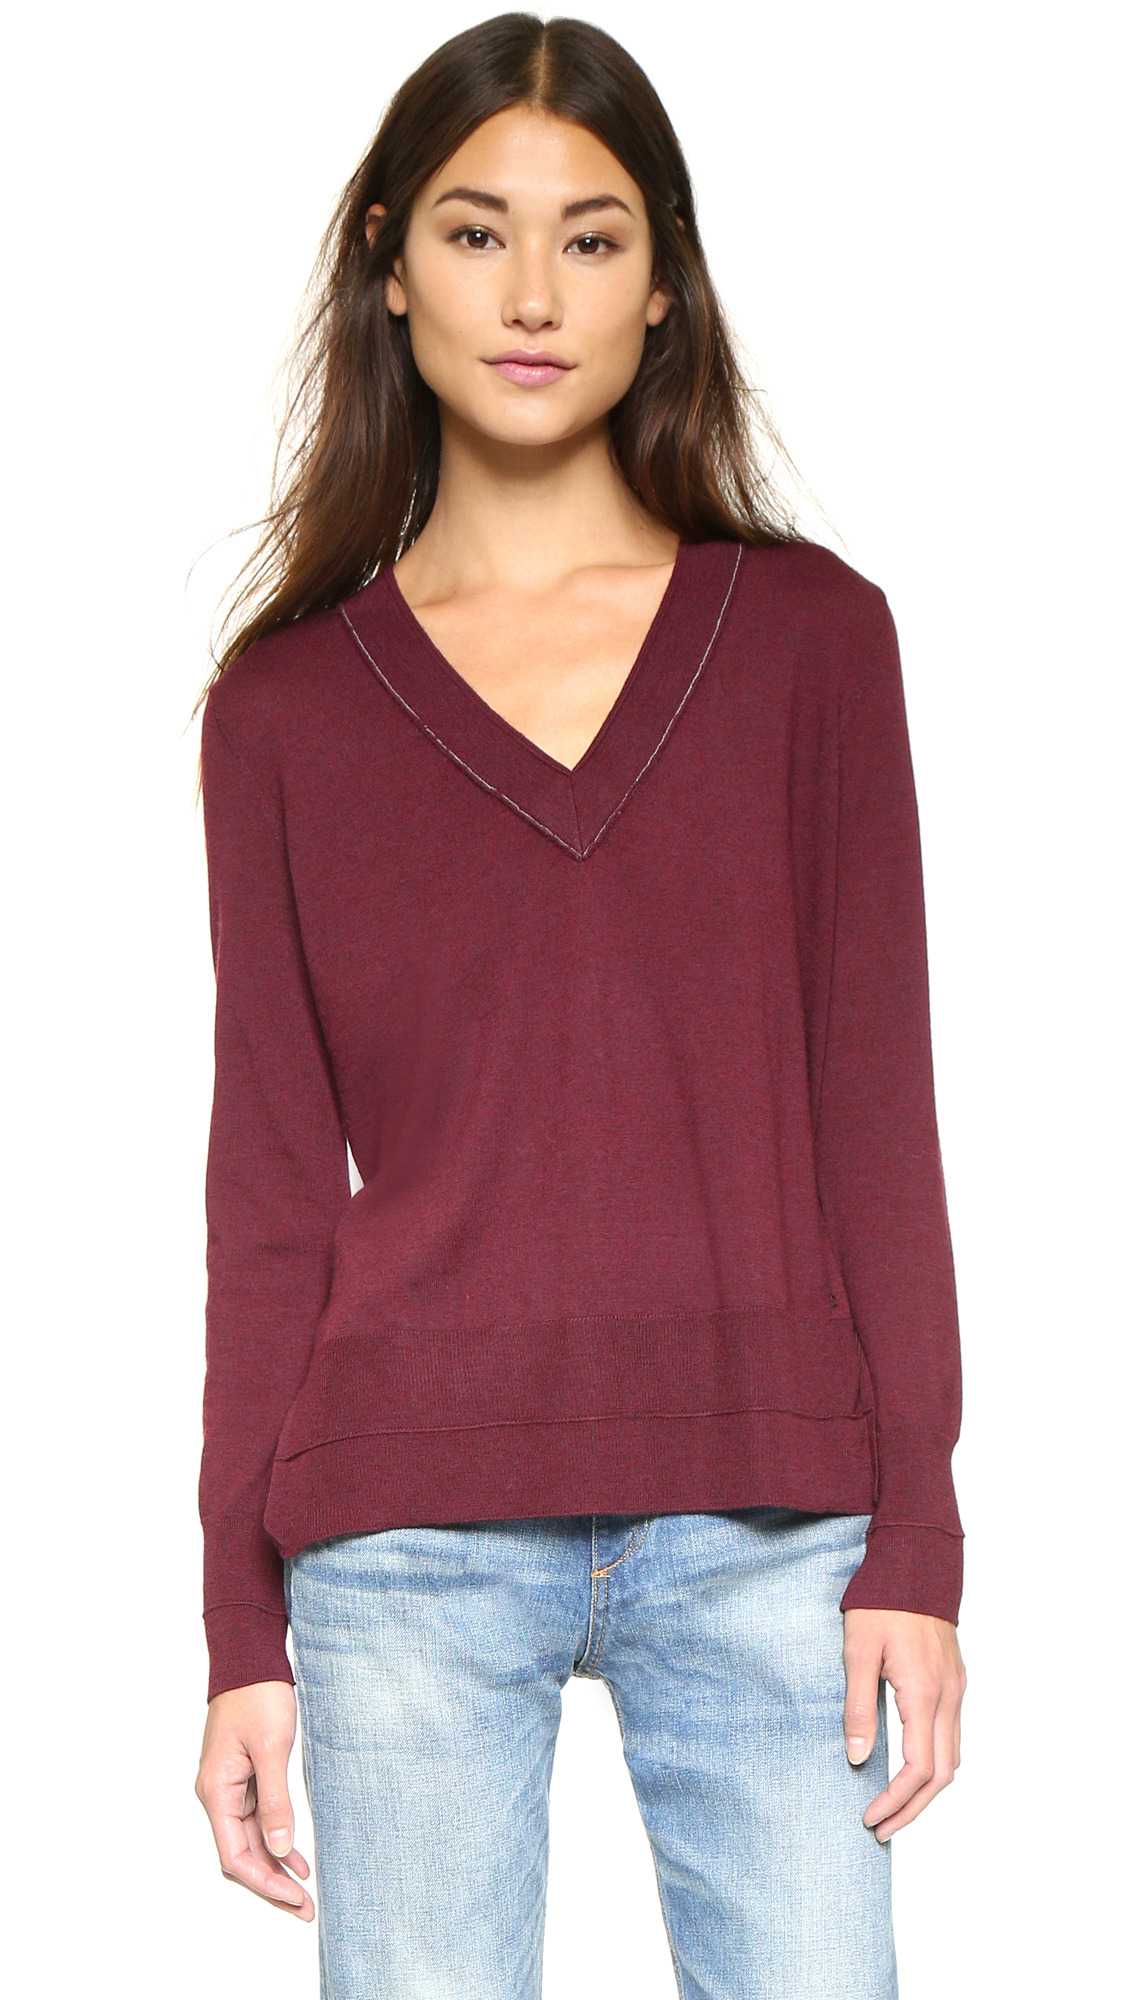 Rag & bone Leanna V Neck Sweater - Burgundy in Purple | Lyst